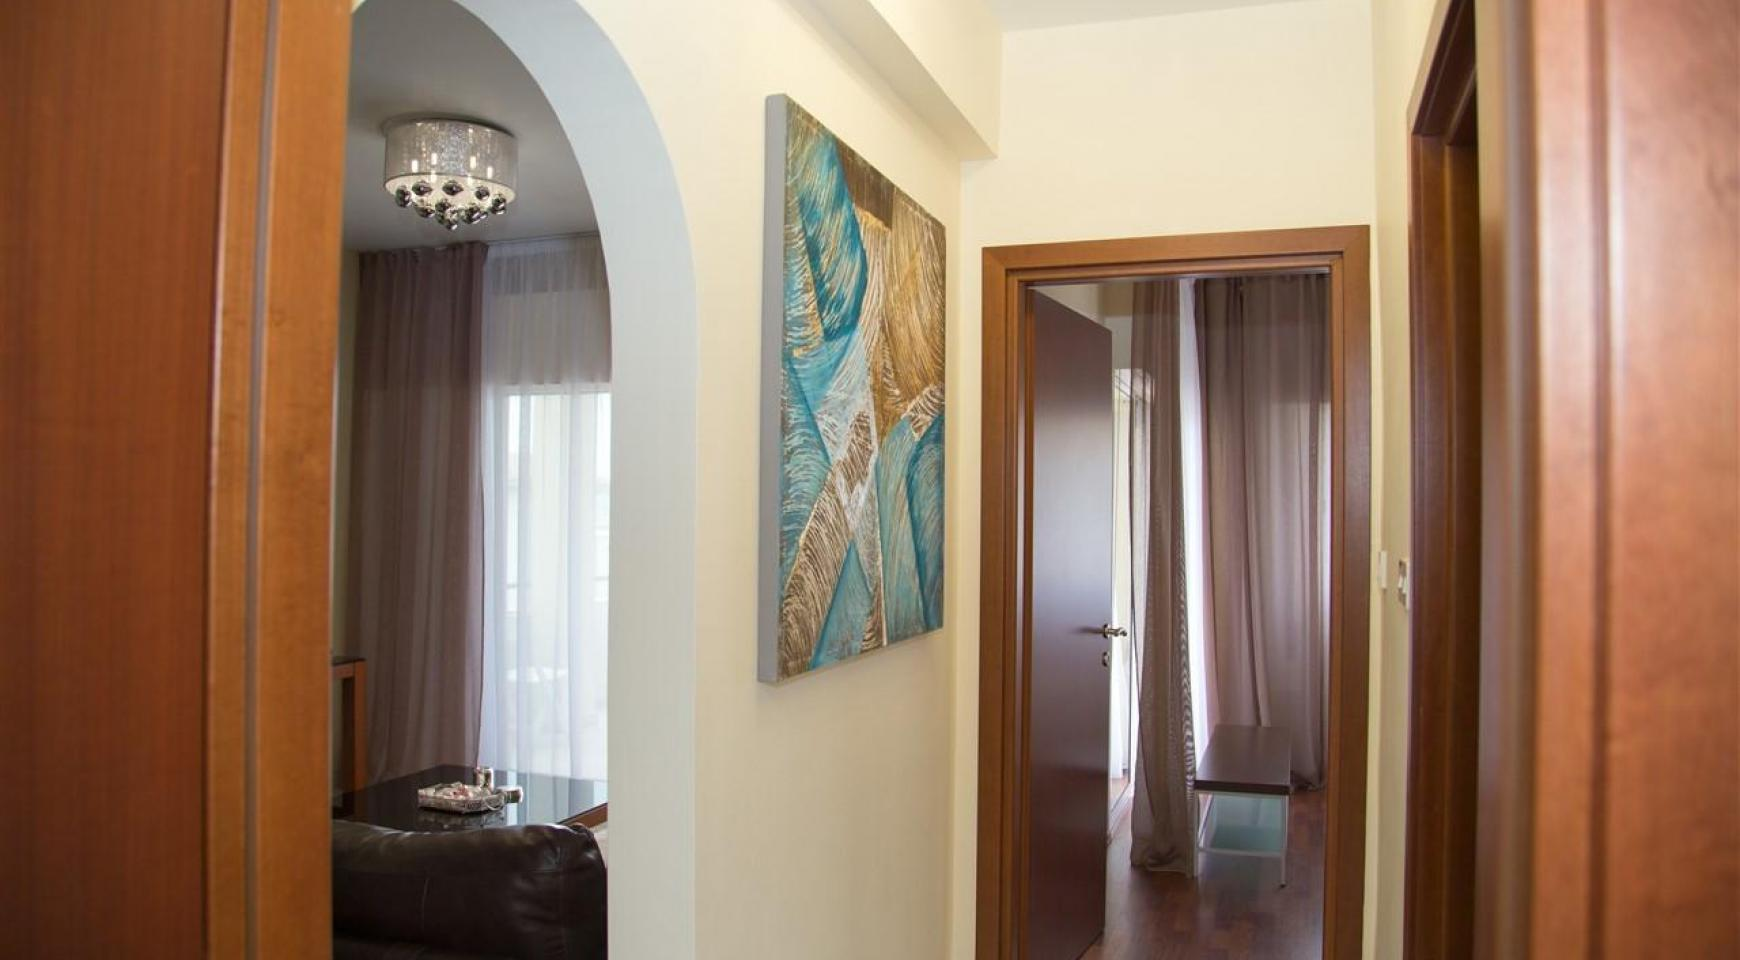 2 Bedroom Apartment Mesogios Iris 304 in the Complex near the Sea - 16